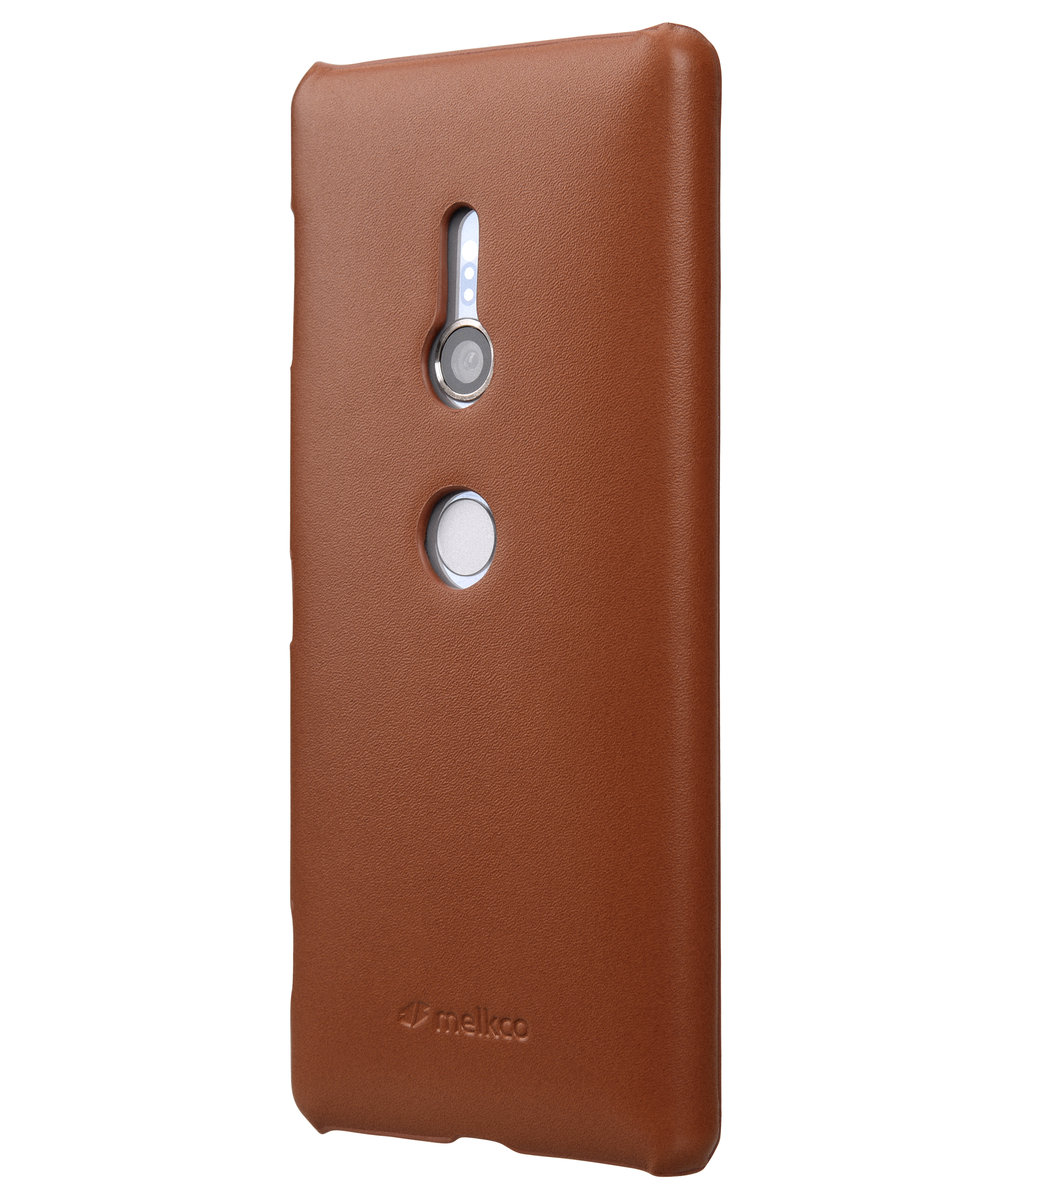 Sony Xperia XZ2 Cow Leather Snap Cover - Brown